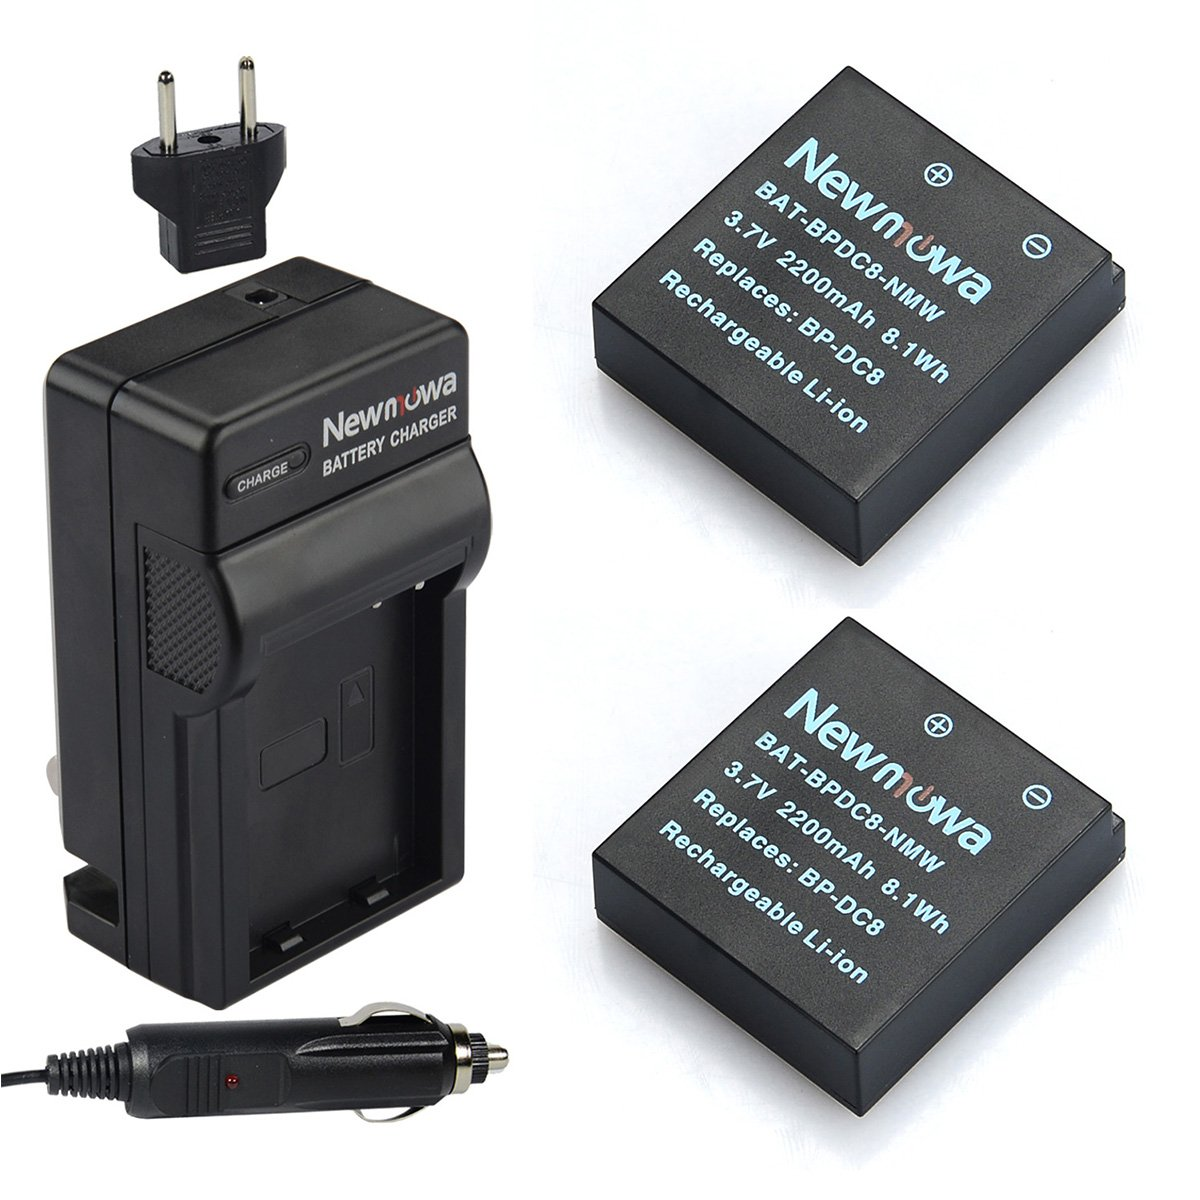 Newmowa BP-DC8 Battery (2-Pack) and Charger kit for Leica MINI-M